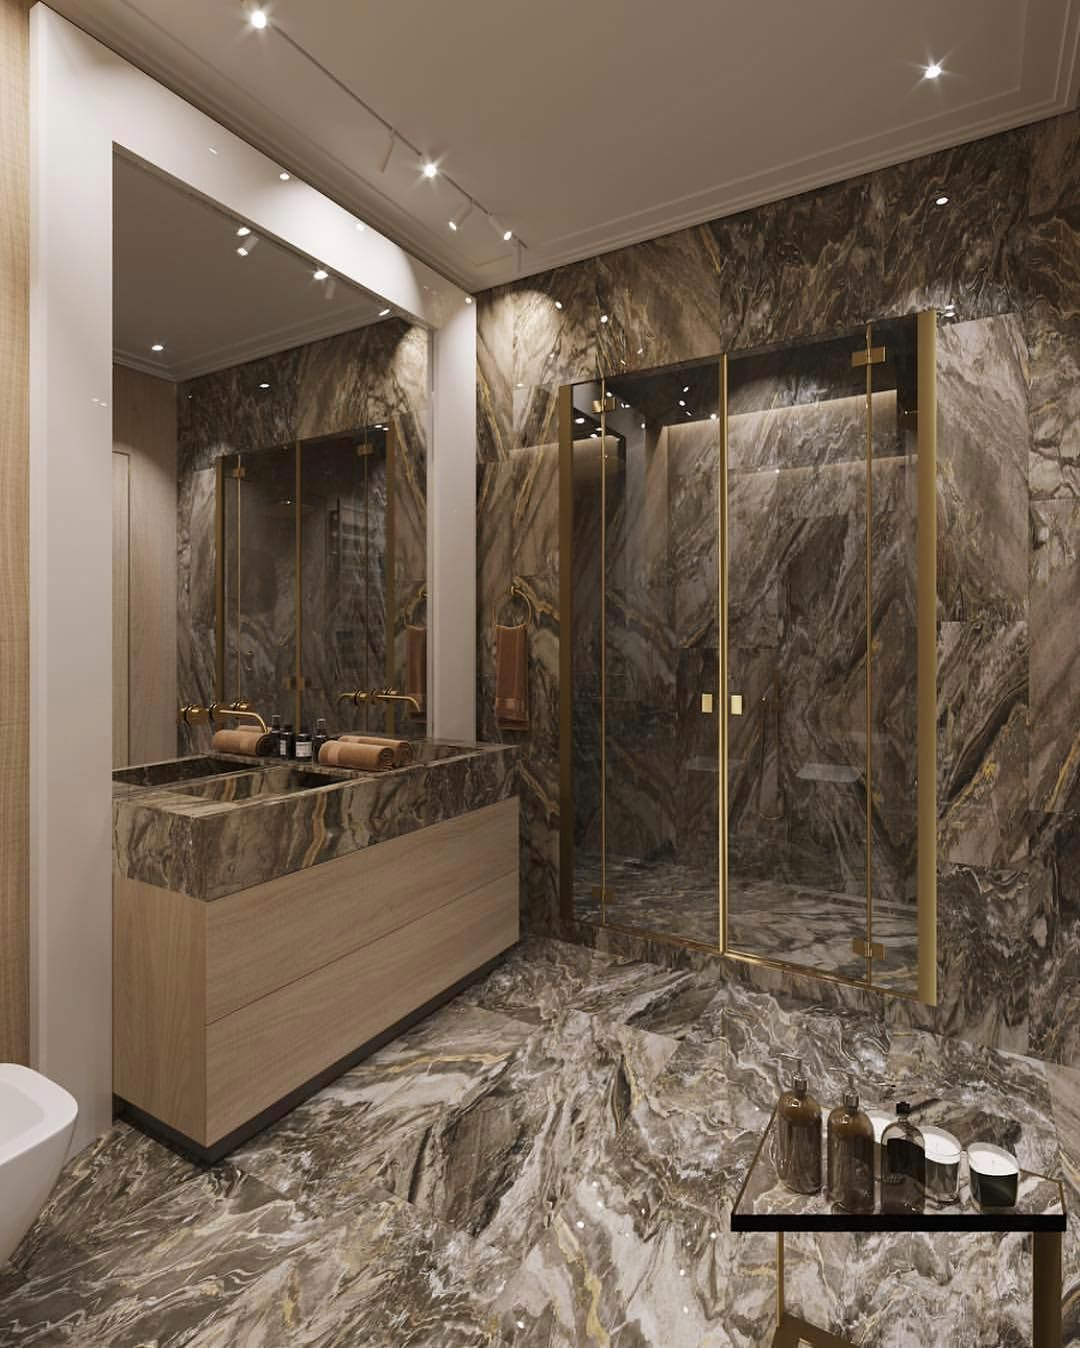 Luxury Interiors On Instagram What Do You Think Of This Bathroom Design Via Onlyforluxury Home Decor Top Interior Design Firms Interior Design Colleges